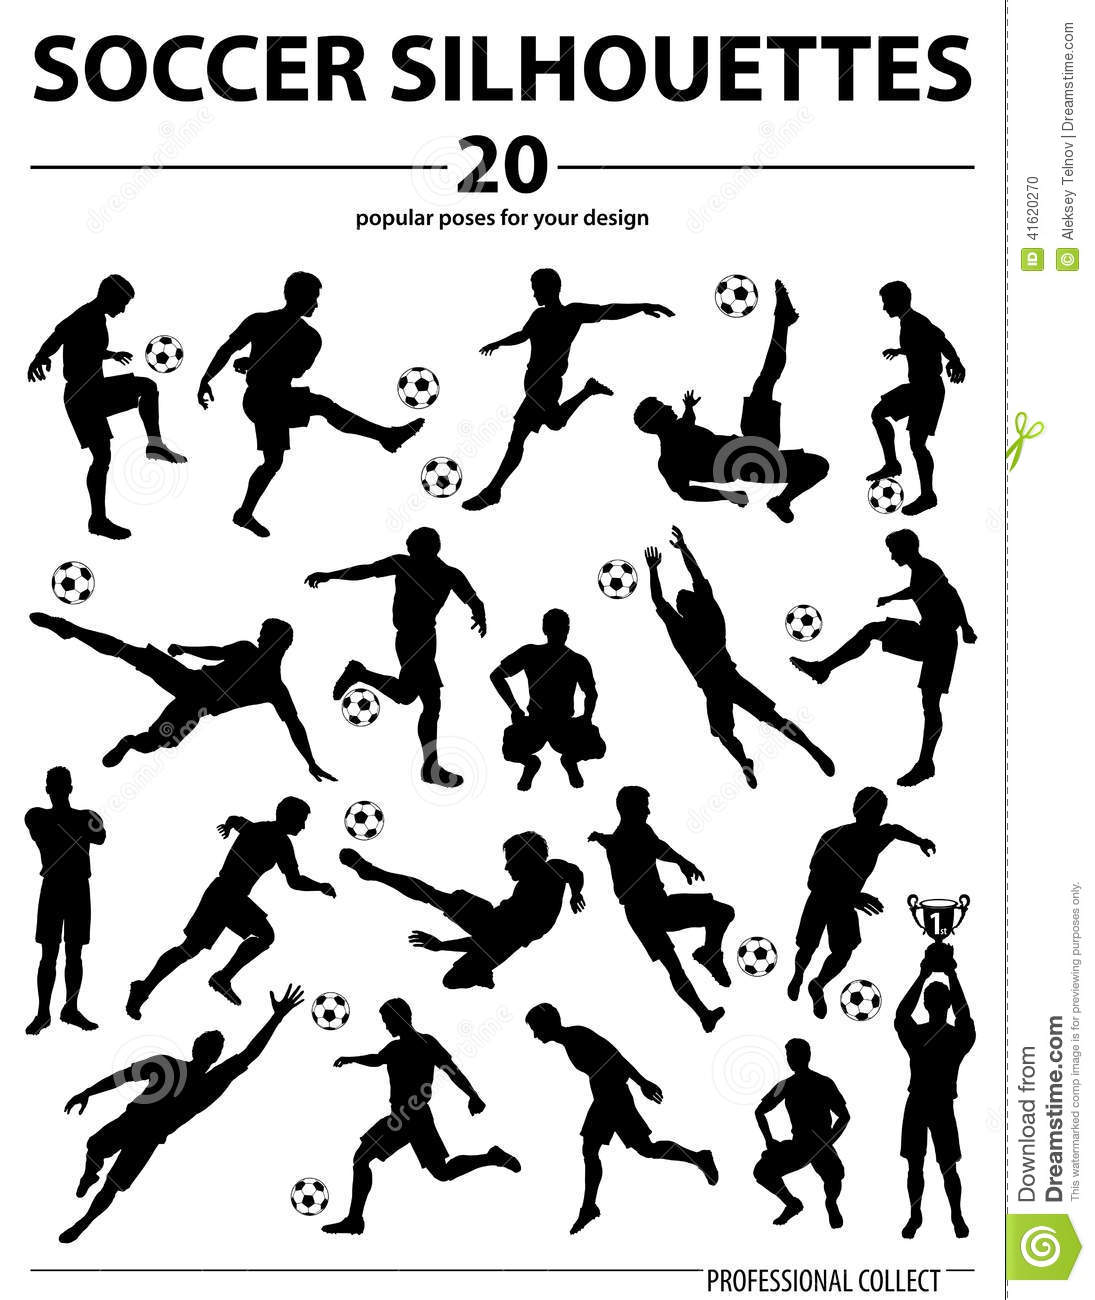 Silhouettes Soccer Players stock vector. Illustration of